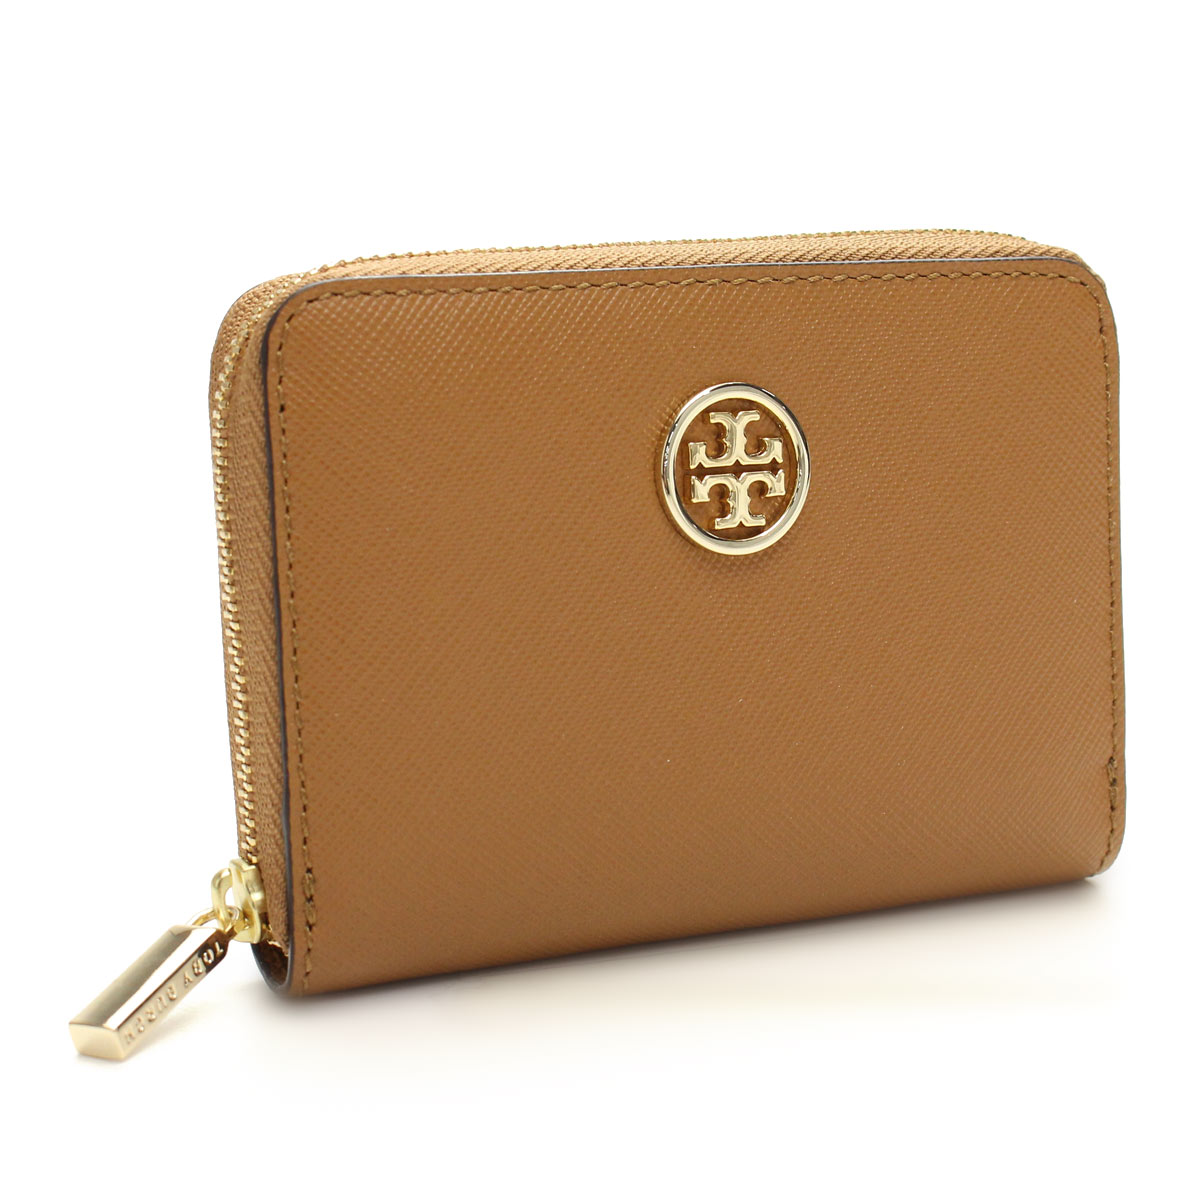 72a7425cca03 Tory Burch (TORY BURCH) ROBINSON with a Keyring coin purse SAFFIANO-211  TIGER EYE Brown( taxfree send by EMS authentic A brand new item )